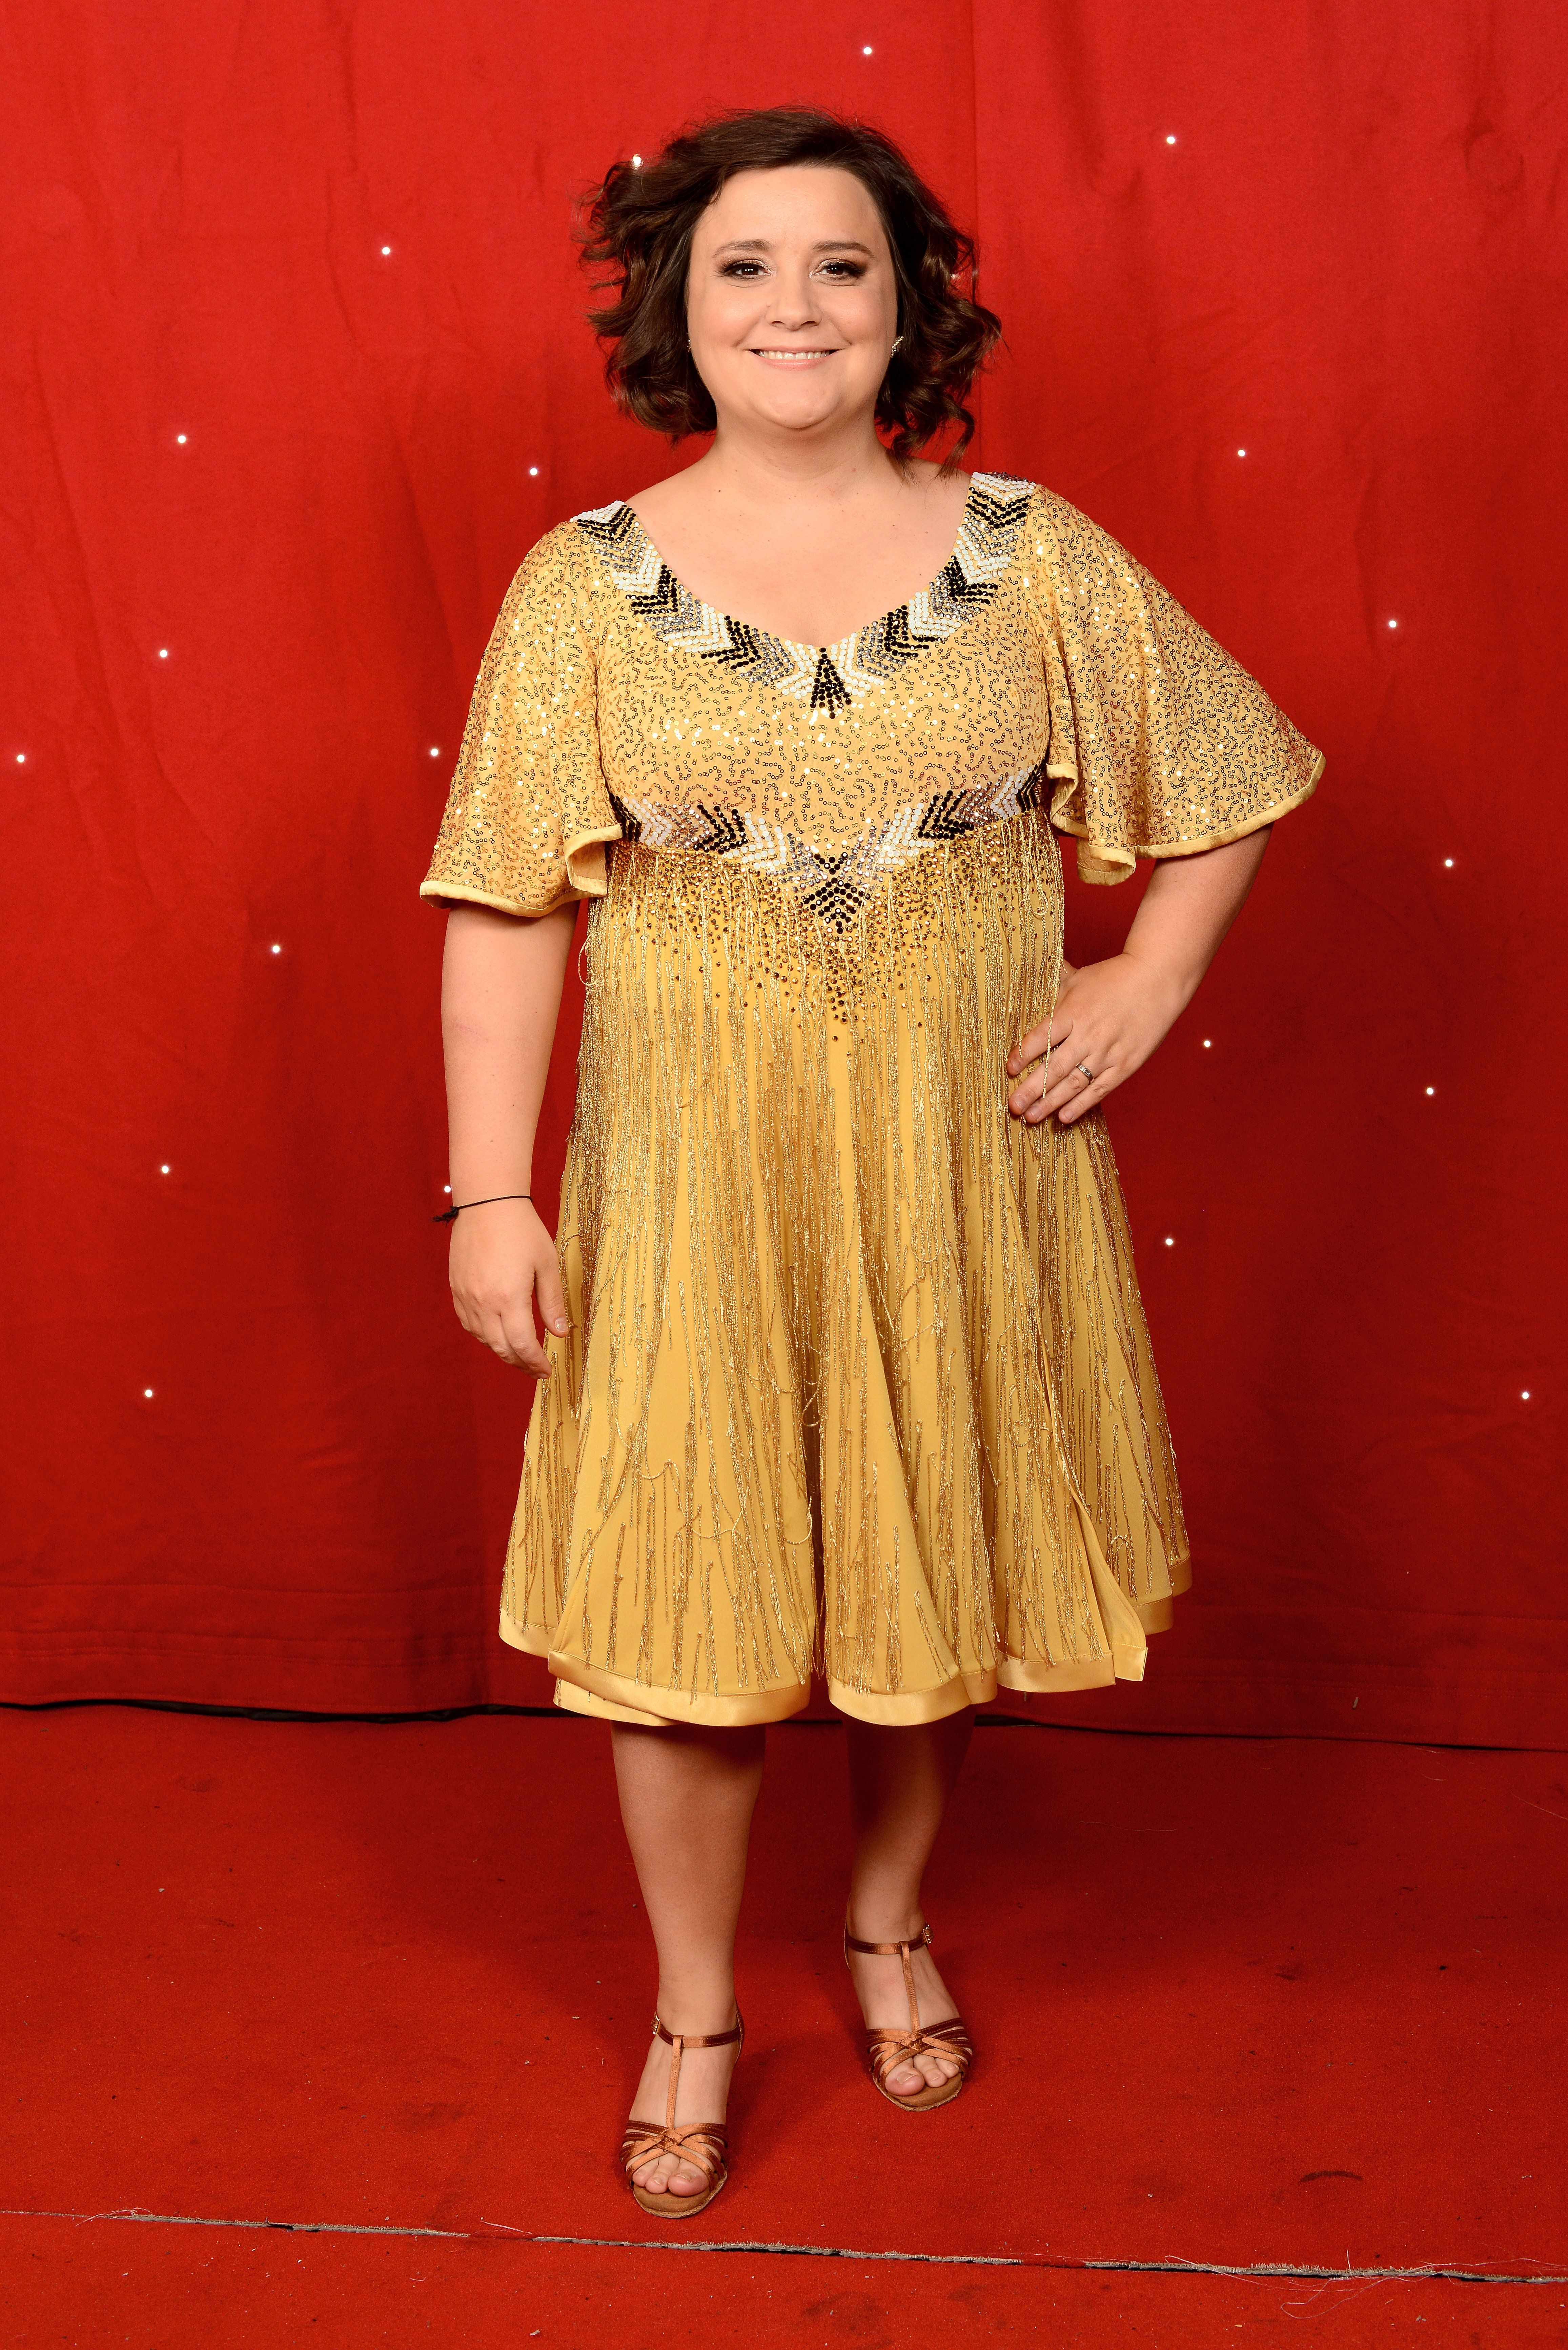 Susan Calman Gets 'I Love Grimsby' Tattoo After Making 'Strictly'